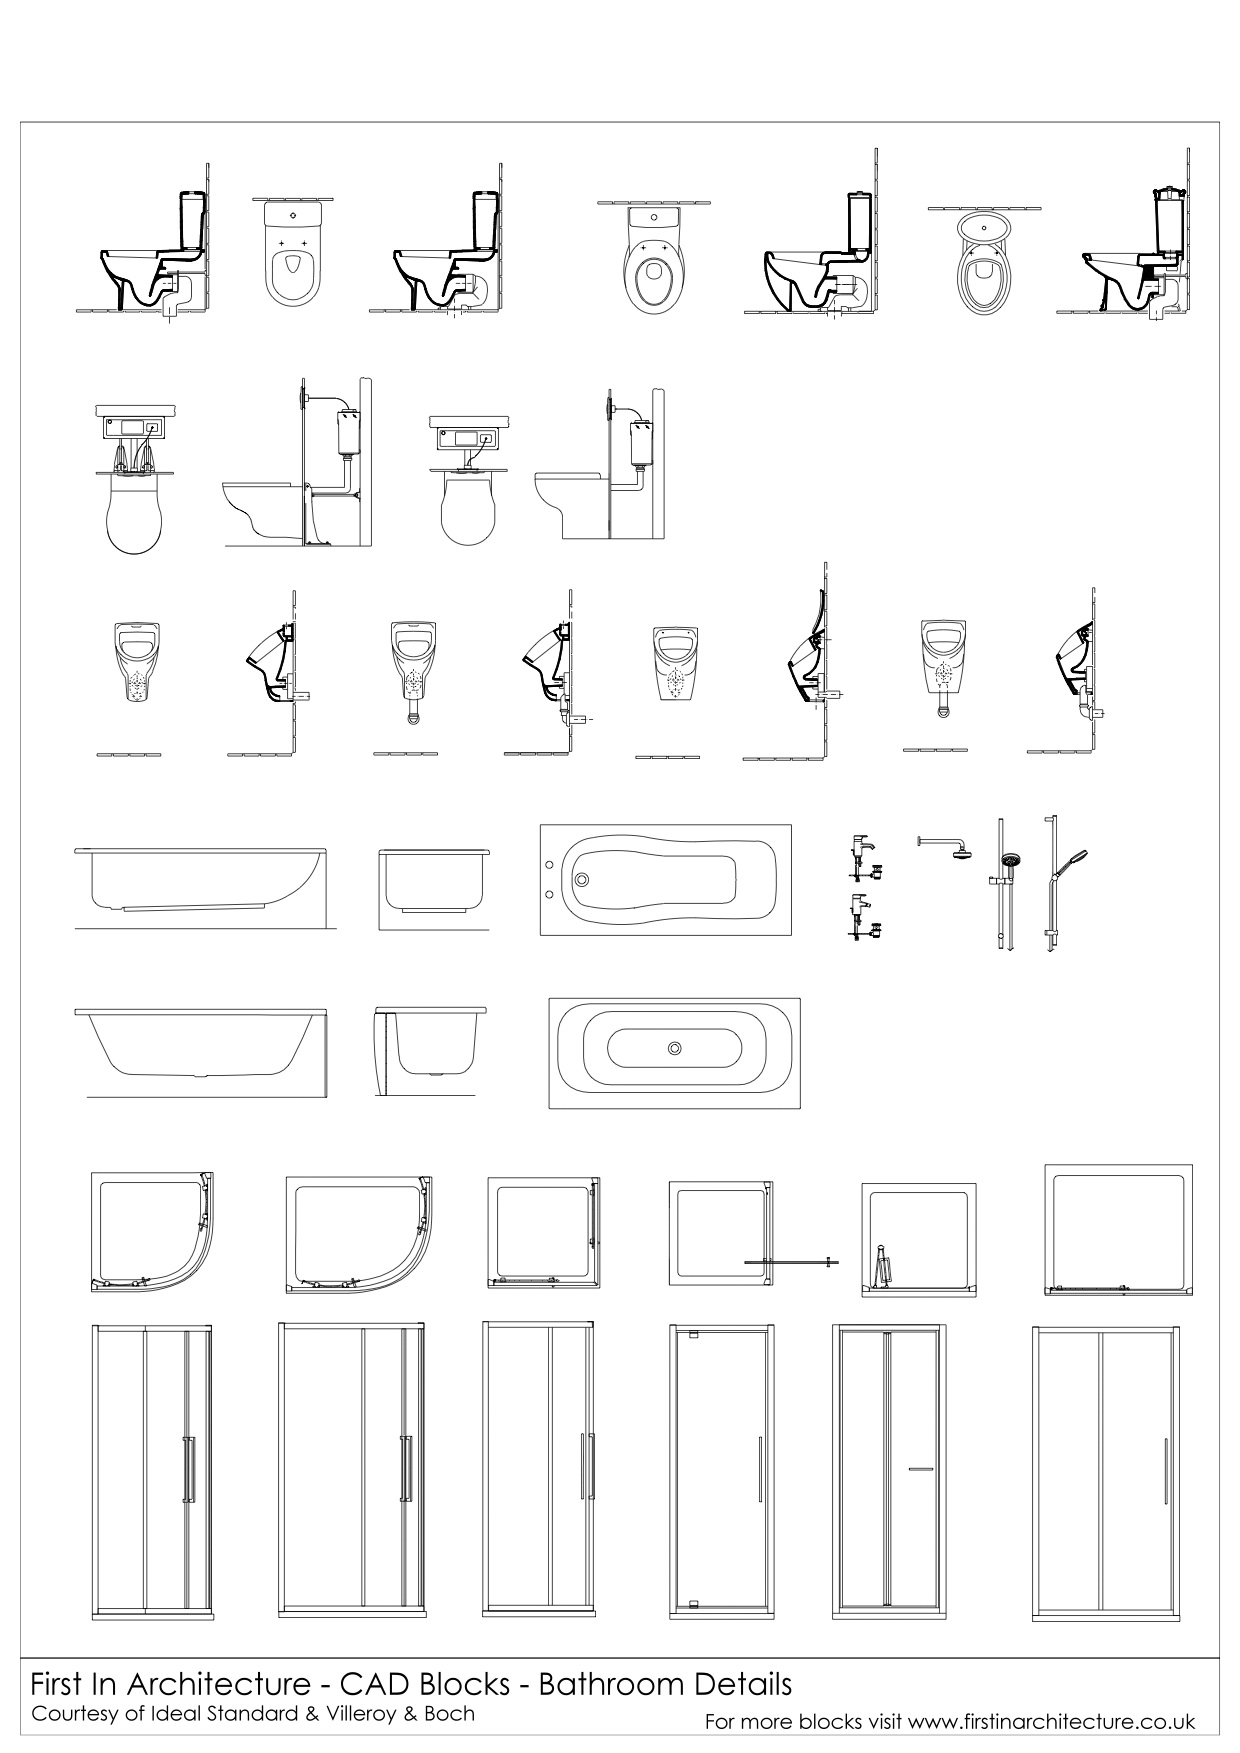 Free Cad Blocks Bathroom Details